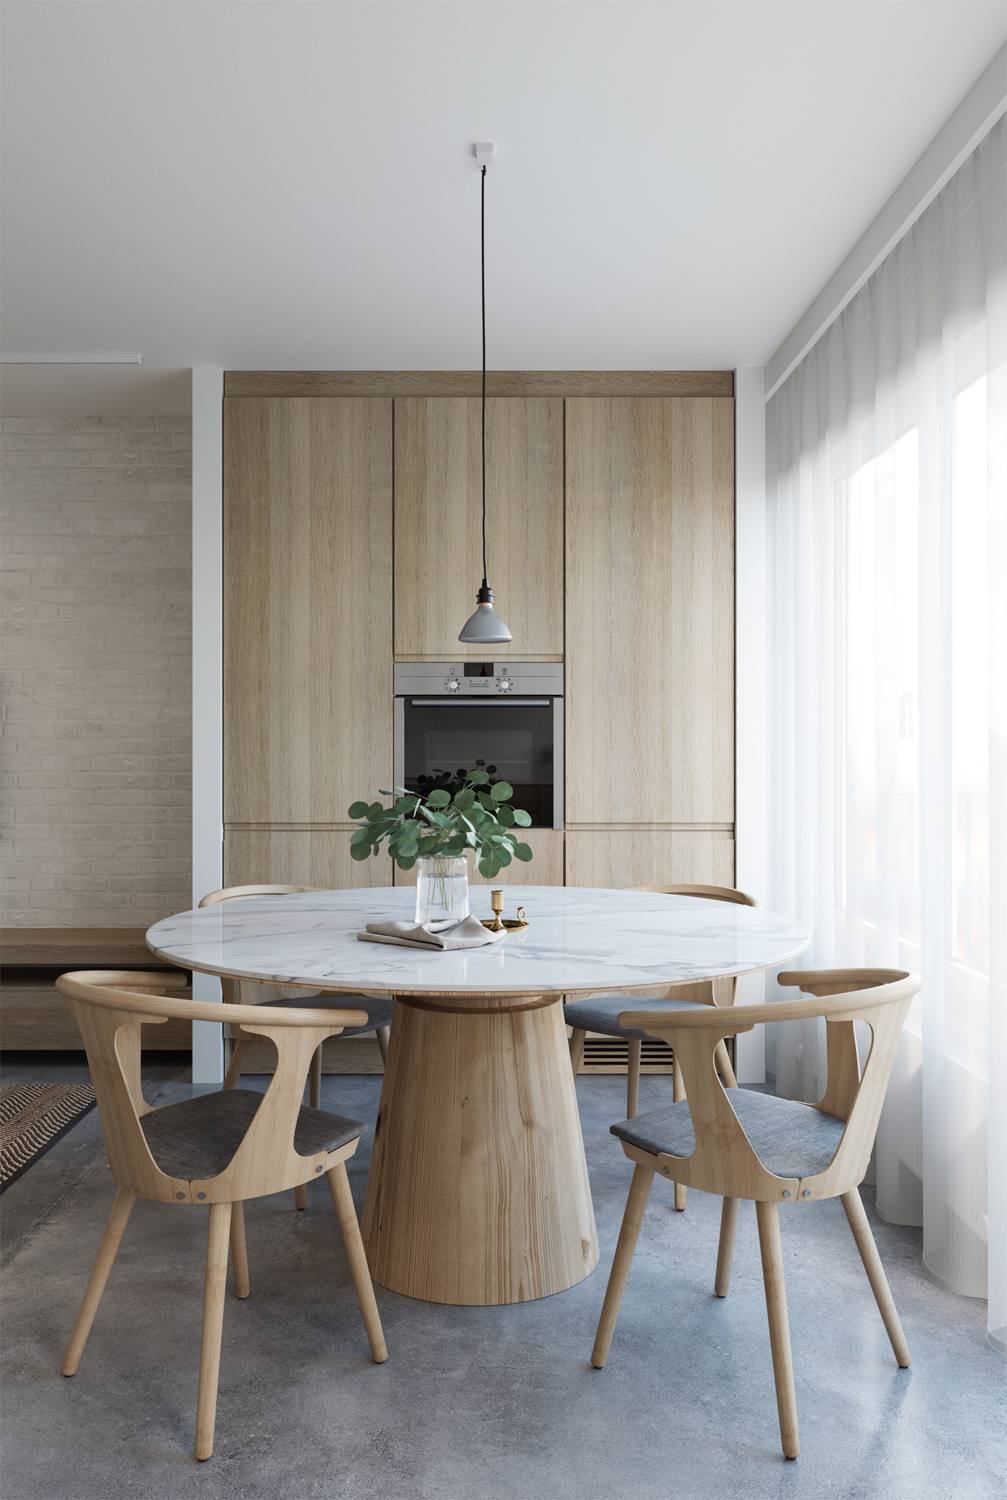 E design kitchen and dining area, 3d kitchen visualisation, e-design process, small space interior design, concrete floor, timber veneer cabinetry, dining area design, inbetween chair, round wood table